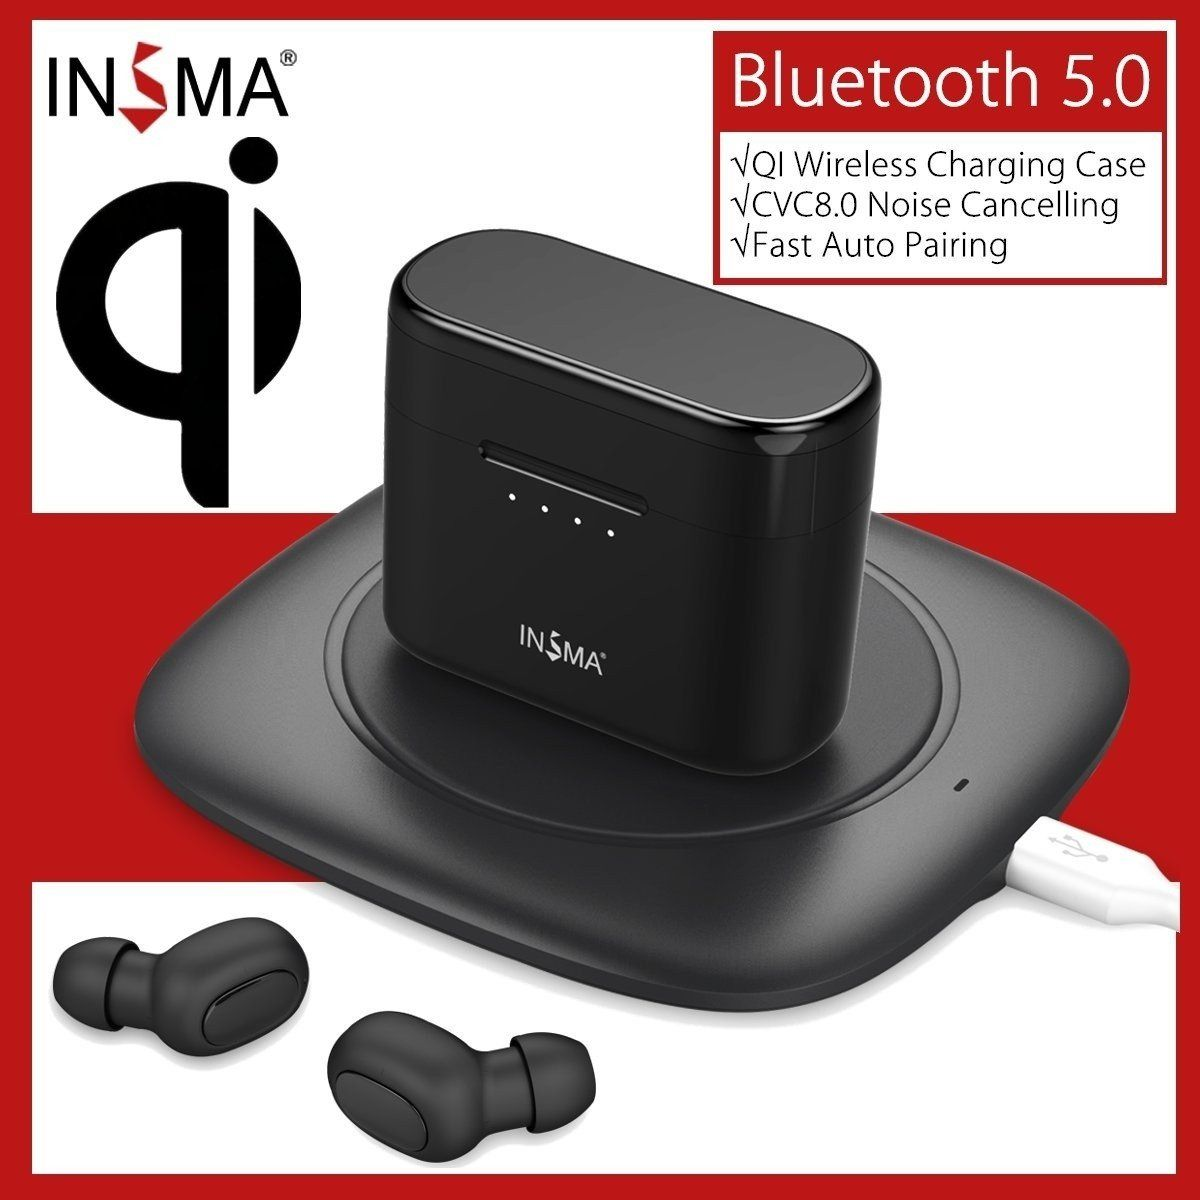 INSMA AirBuds with QI Charging Case Mini TWS Earphone bluetooth 5.0 Earbuds Stereo Wireless Headset PK i10 i12 i60